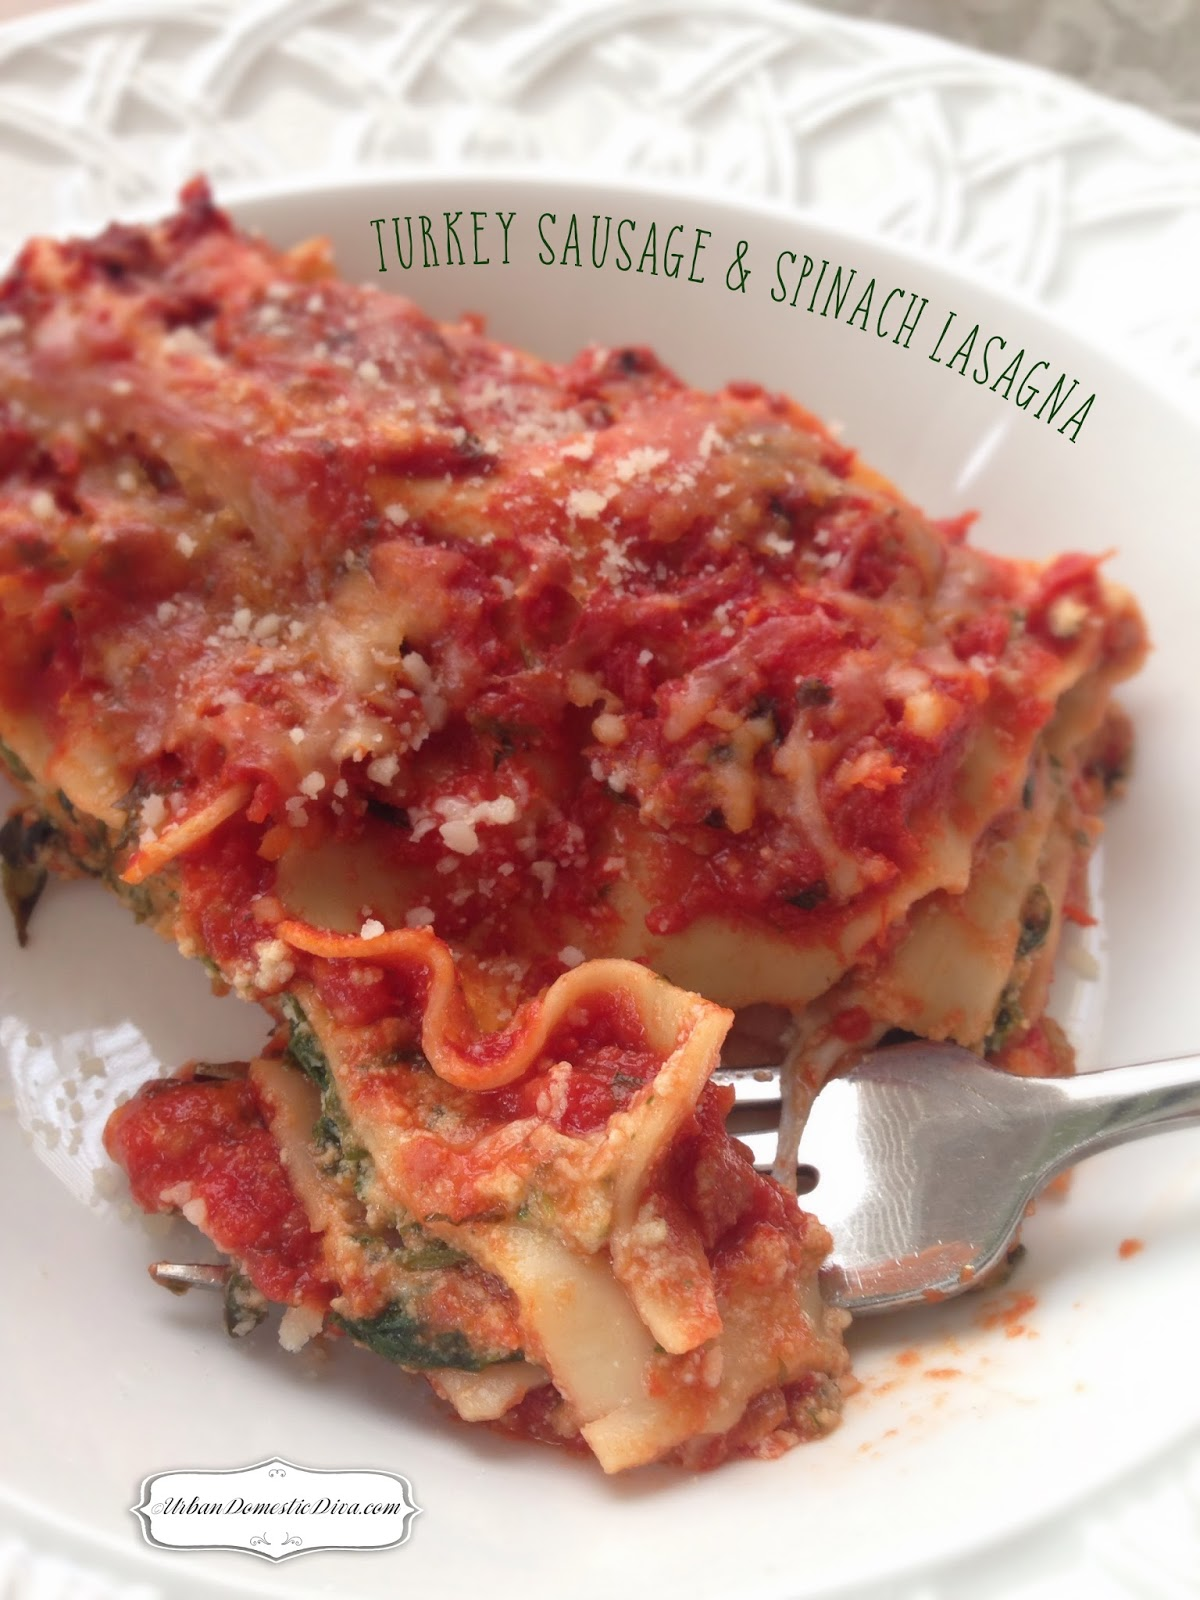 RECIPE: Turkey Sausage and Spinach Lasagna